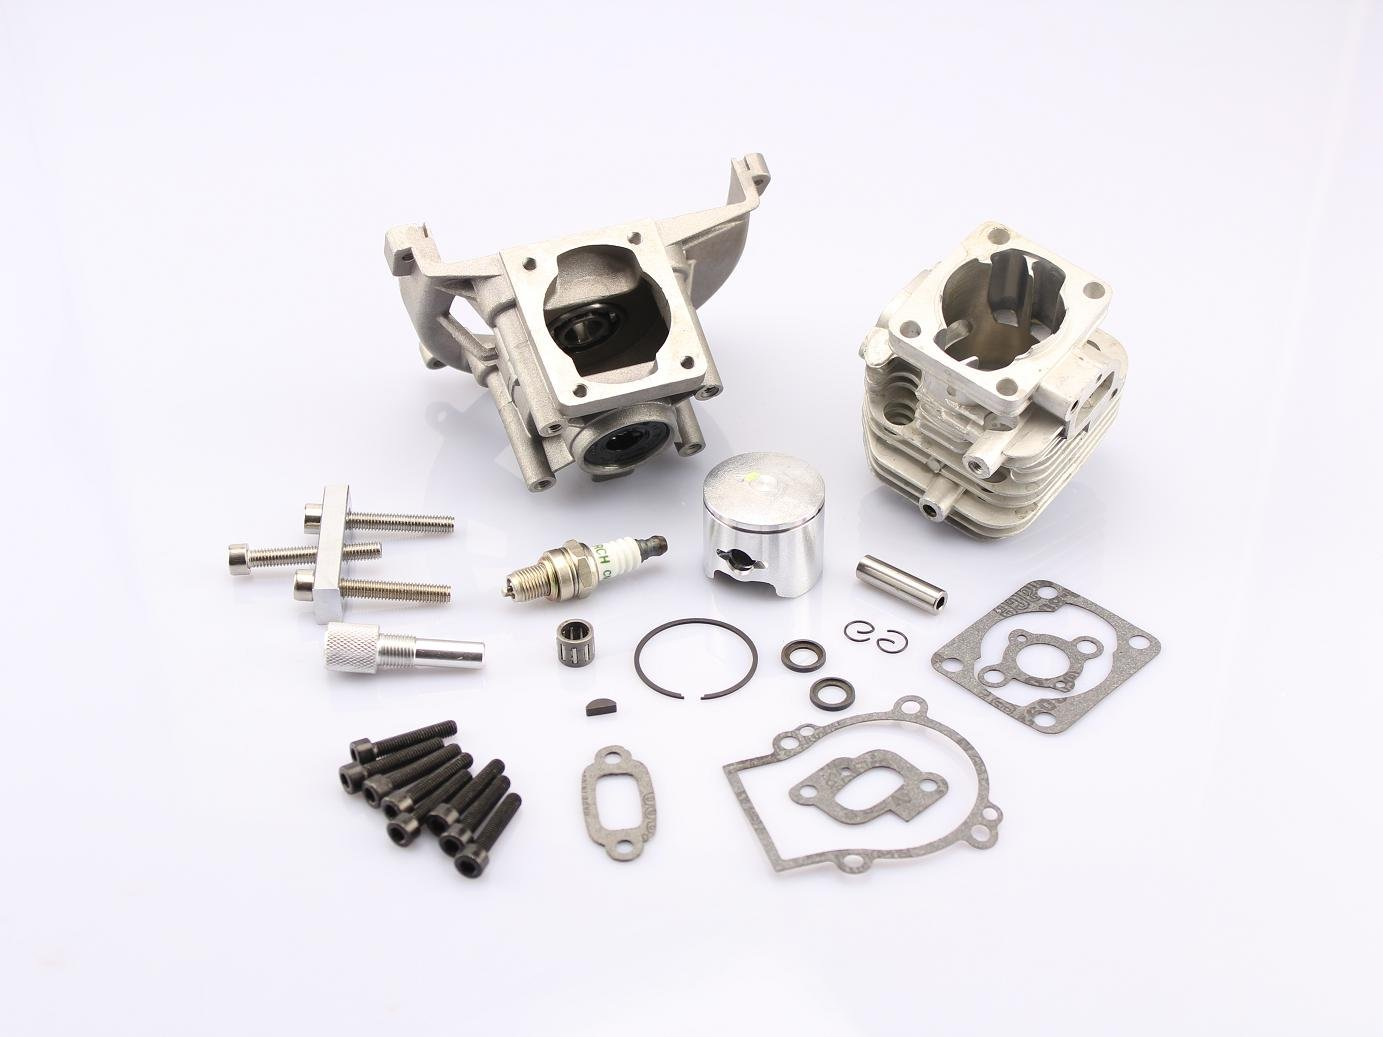 29CC four-point fixed engine parts kit for 1/5 baja HPI KM 5B 5T 5SC rc car straight row 29cc piston for high speed 29cc gasoline engine zenoah parts rc boat